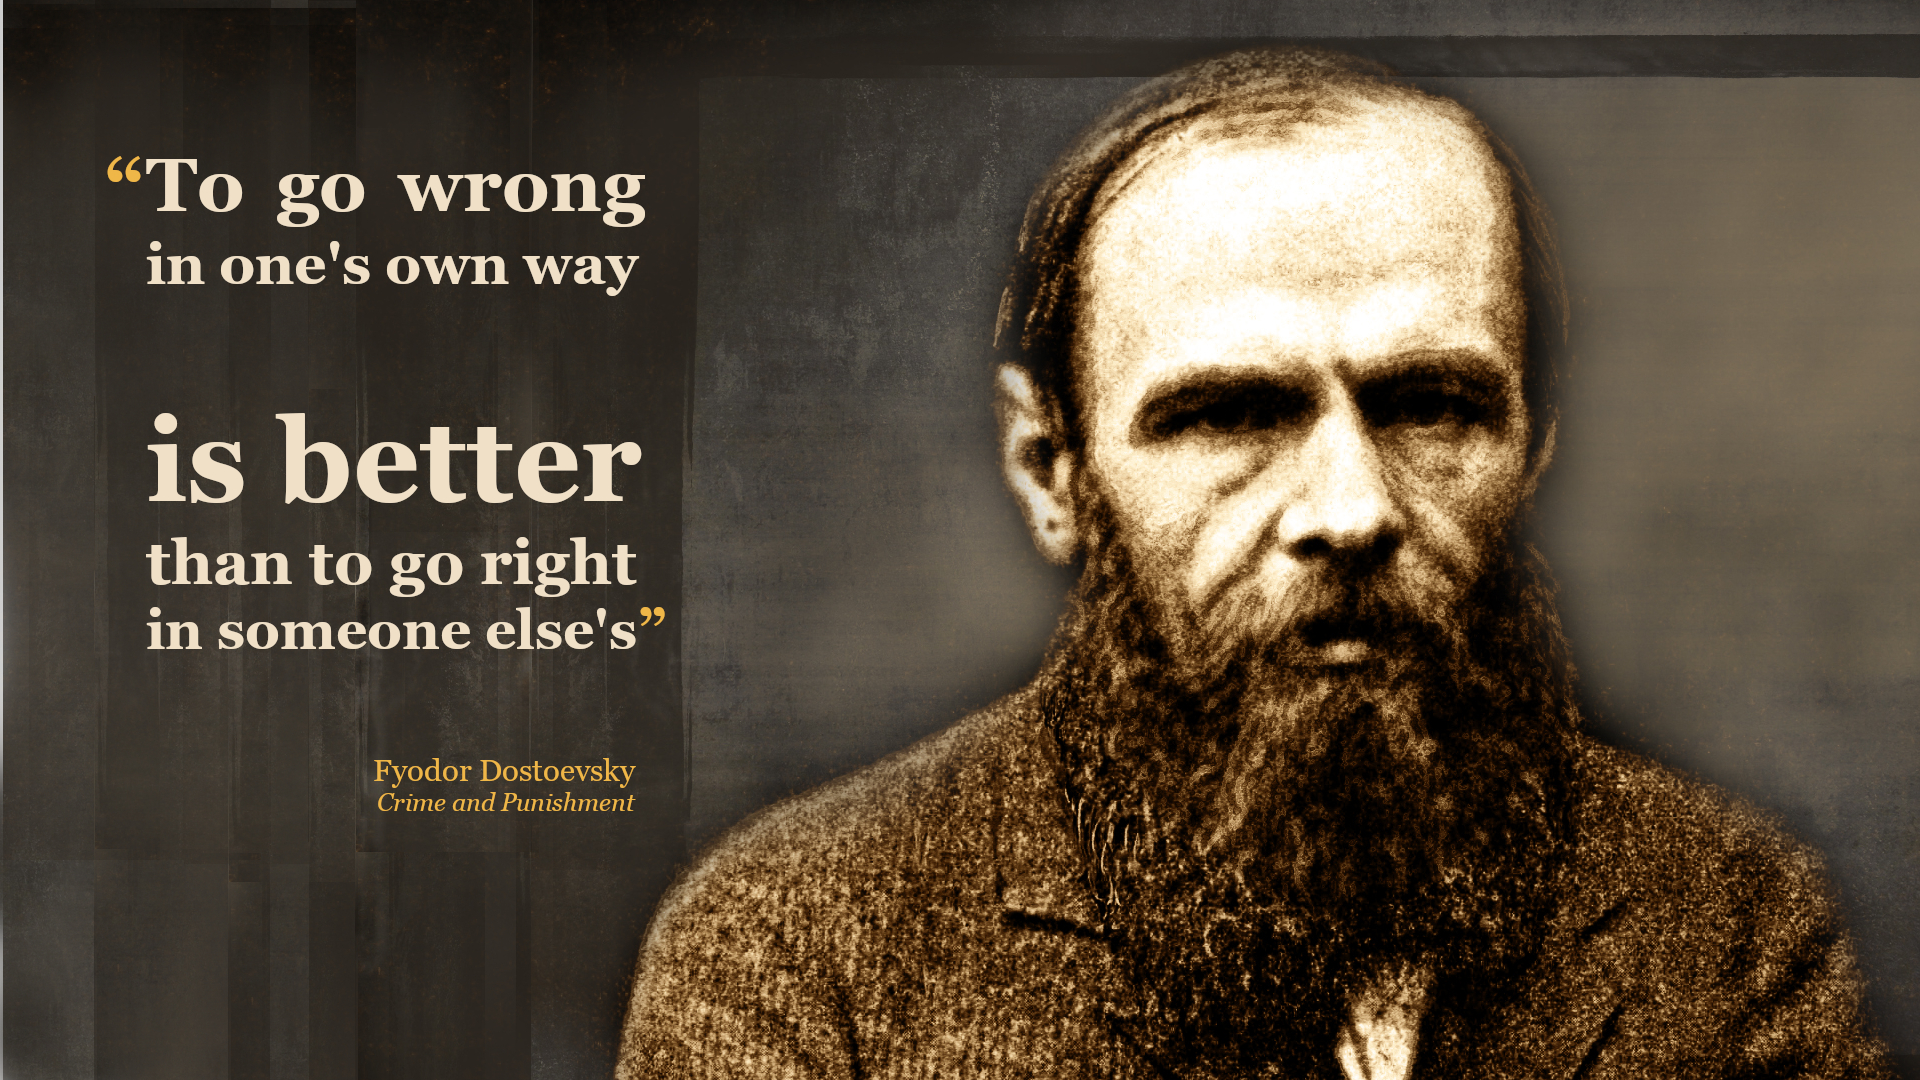 """To go wrong in one's own way is better than to go right in someone else's."" – Fyodor Dostoyevsky [1920×1080]"